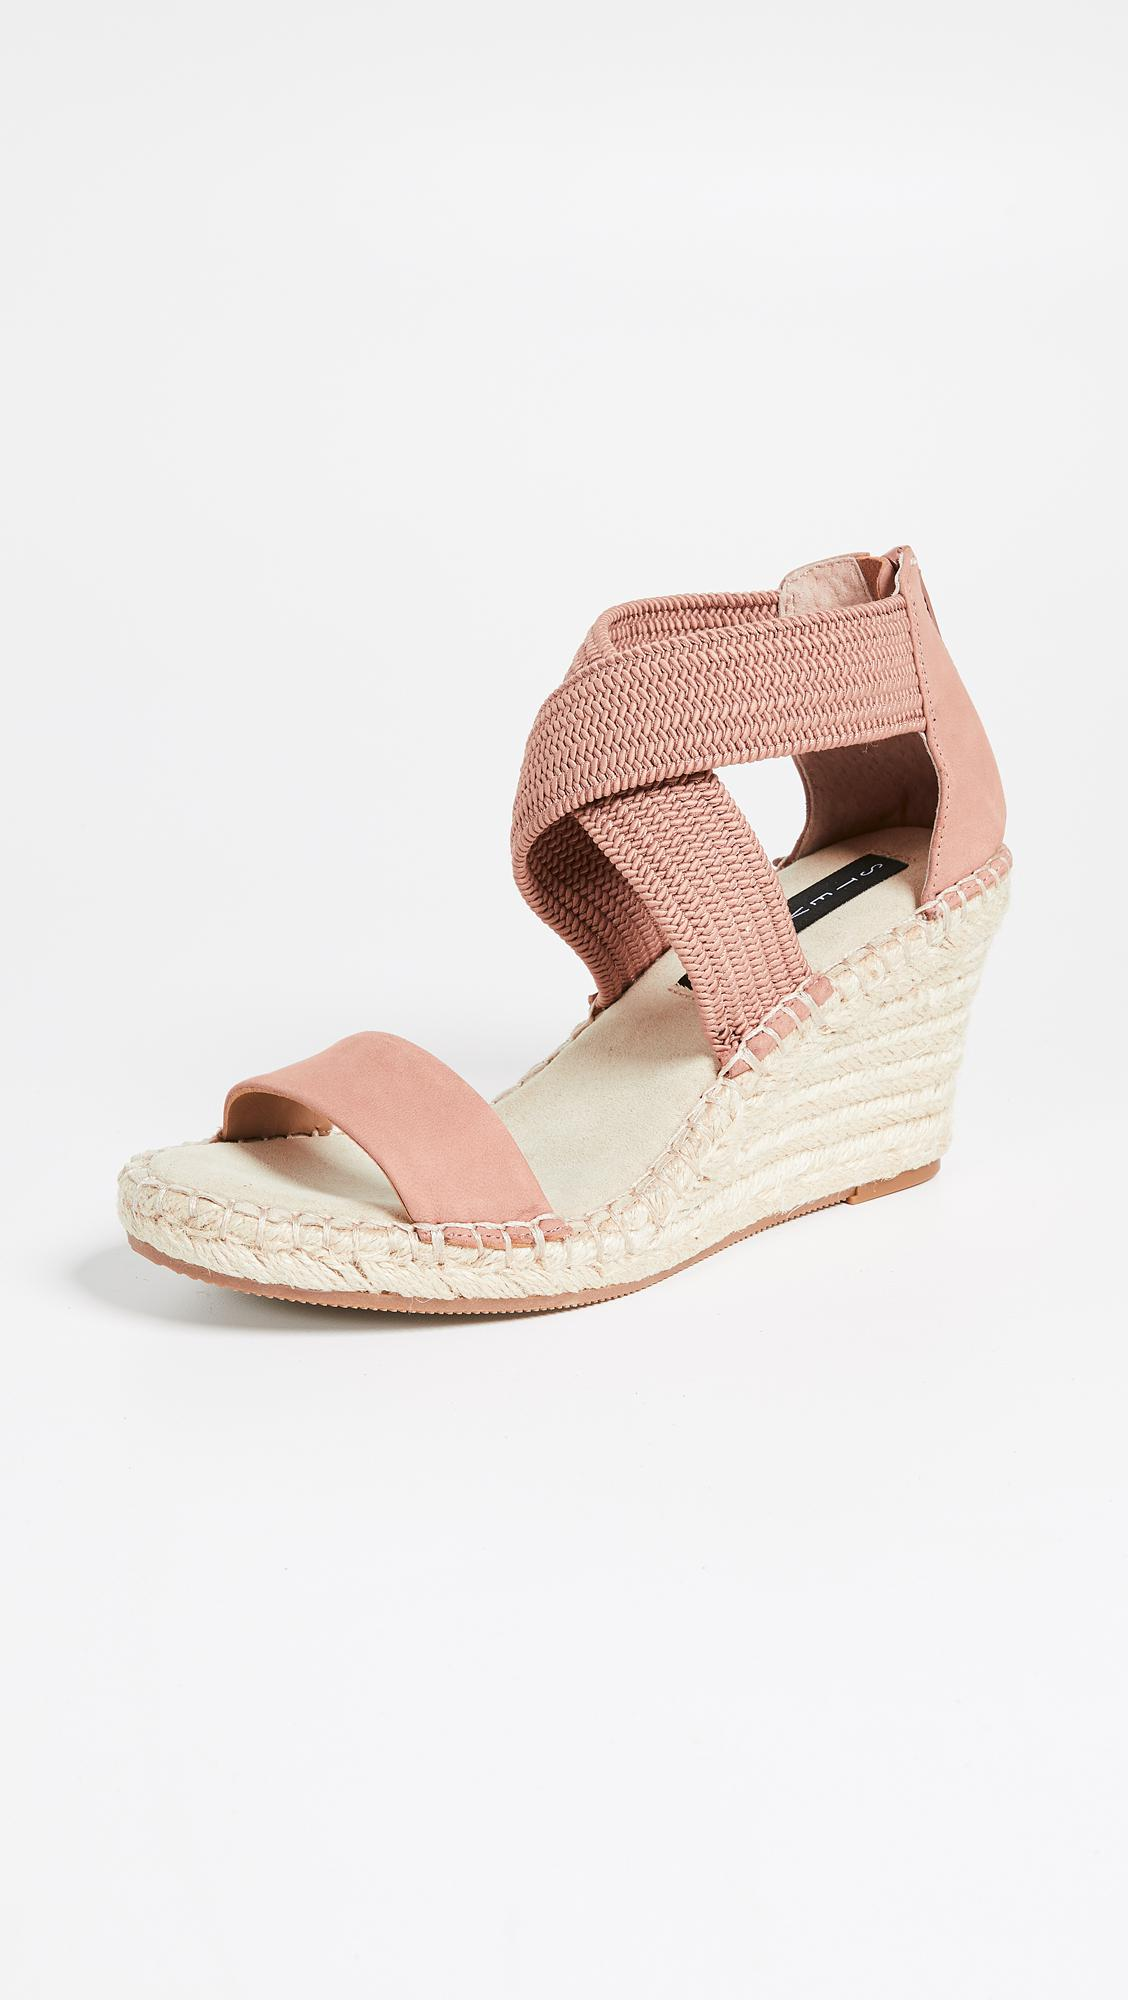 9516569dbce Steven by Steve Madden. Women s Excited Wedge Espadrilles